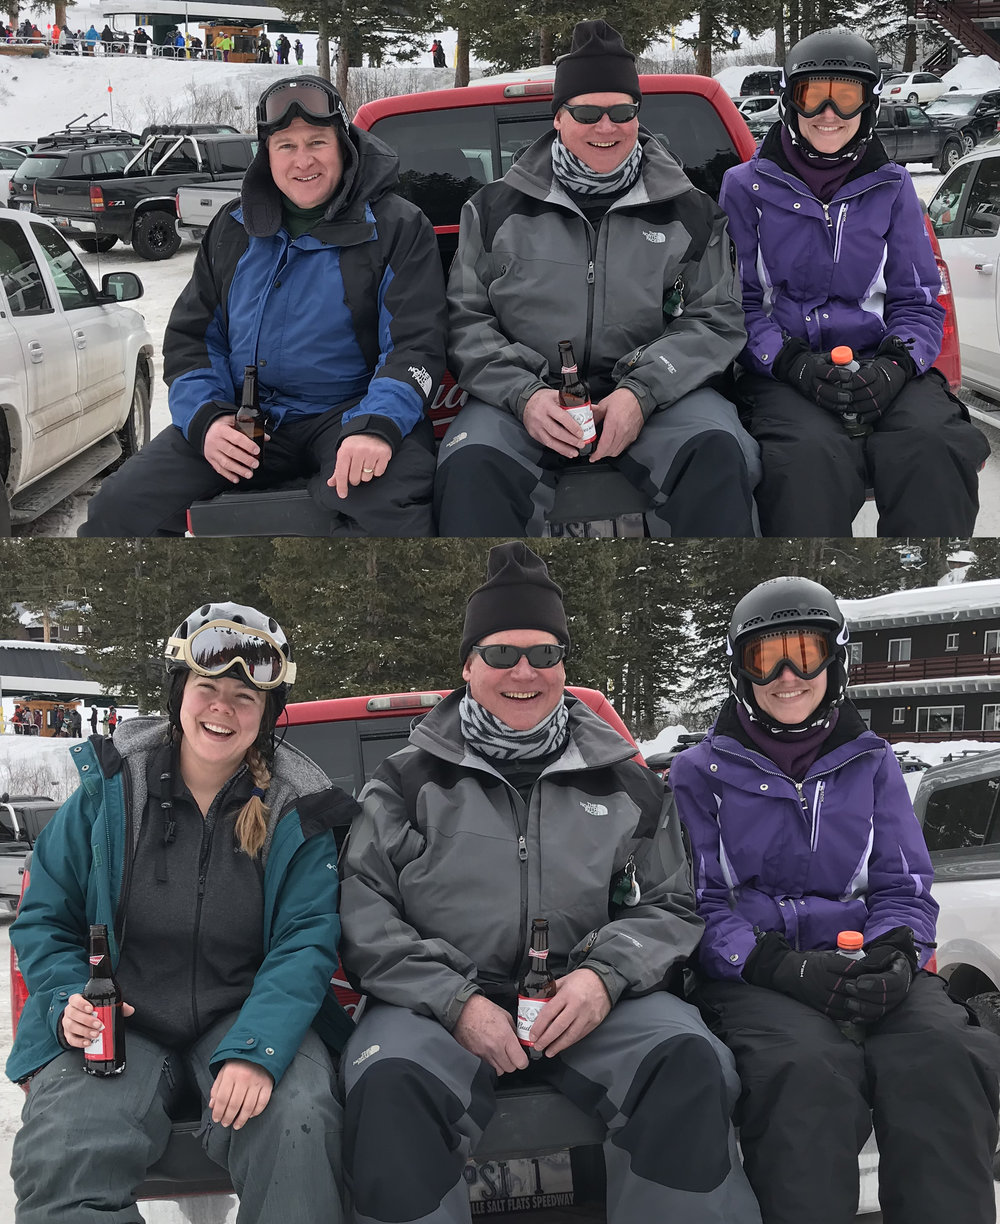 PSI Ski Day 2018 merge.jpg